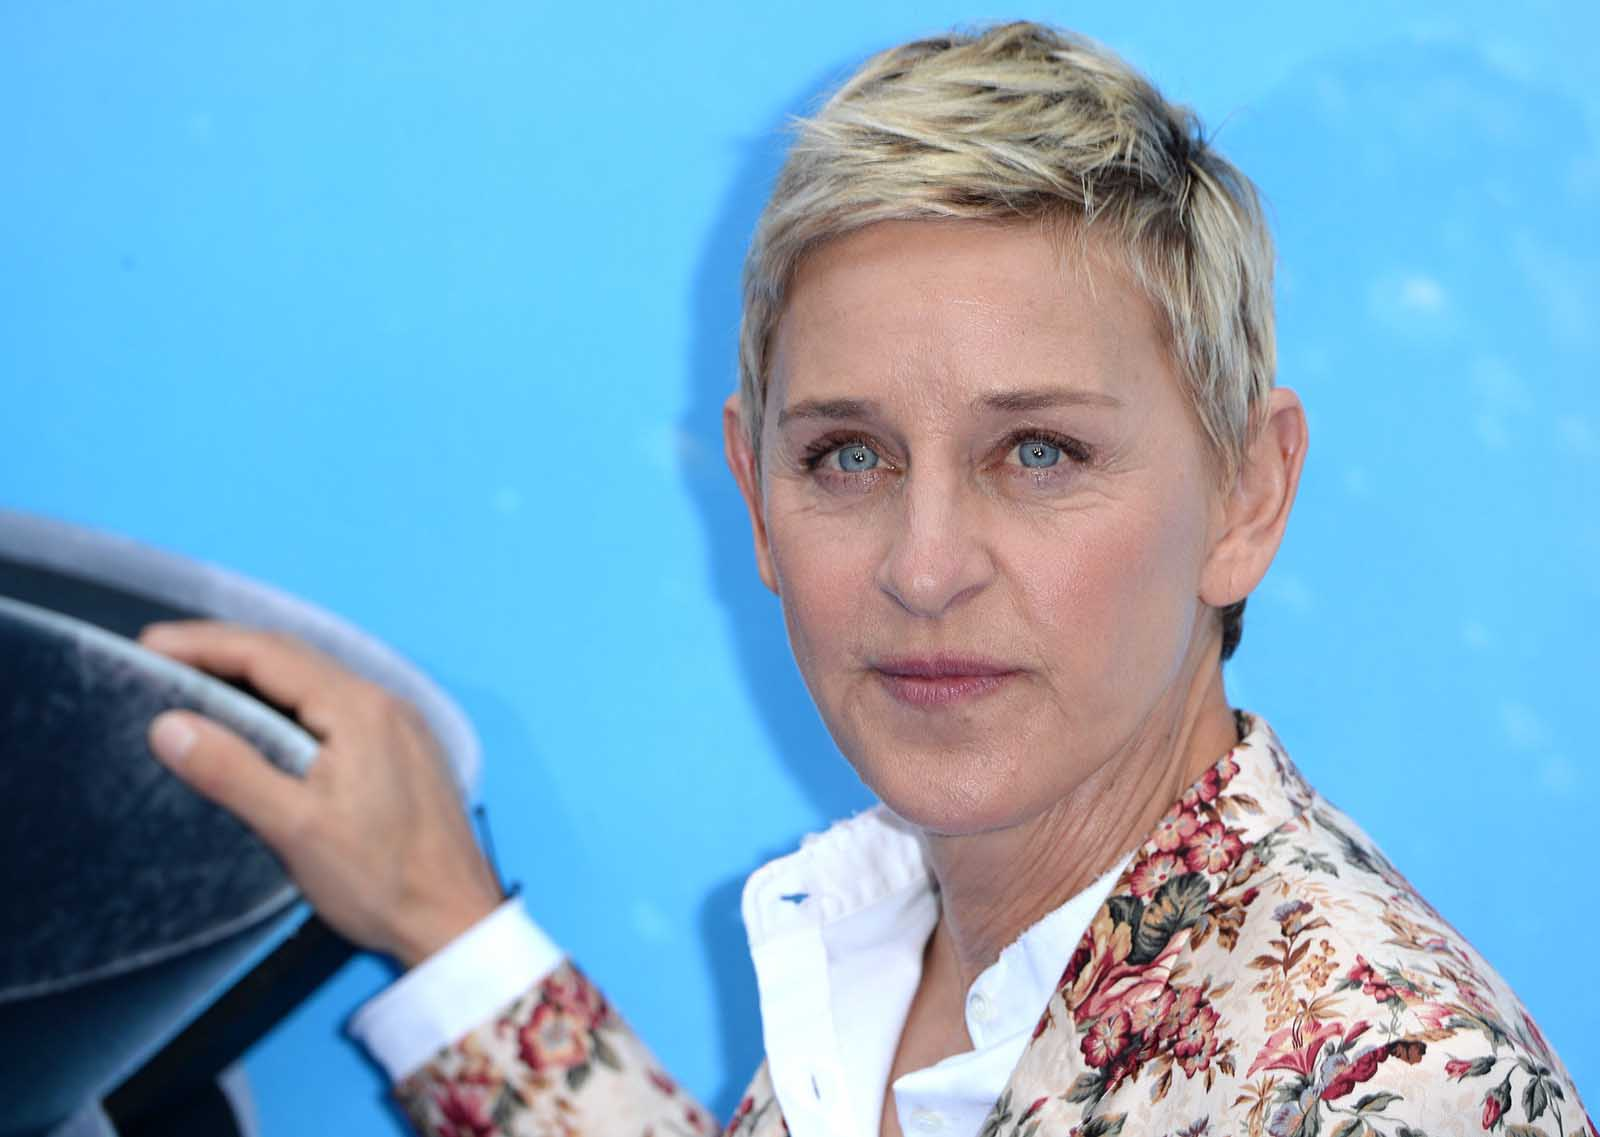 With how insane some of the accusations against Ellen DeGeneres are, it has people wondering, was she always this mean?